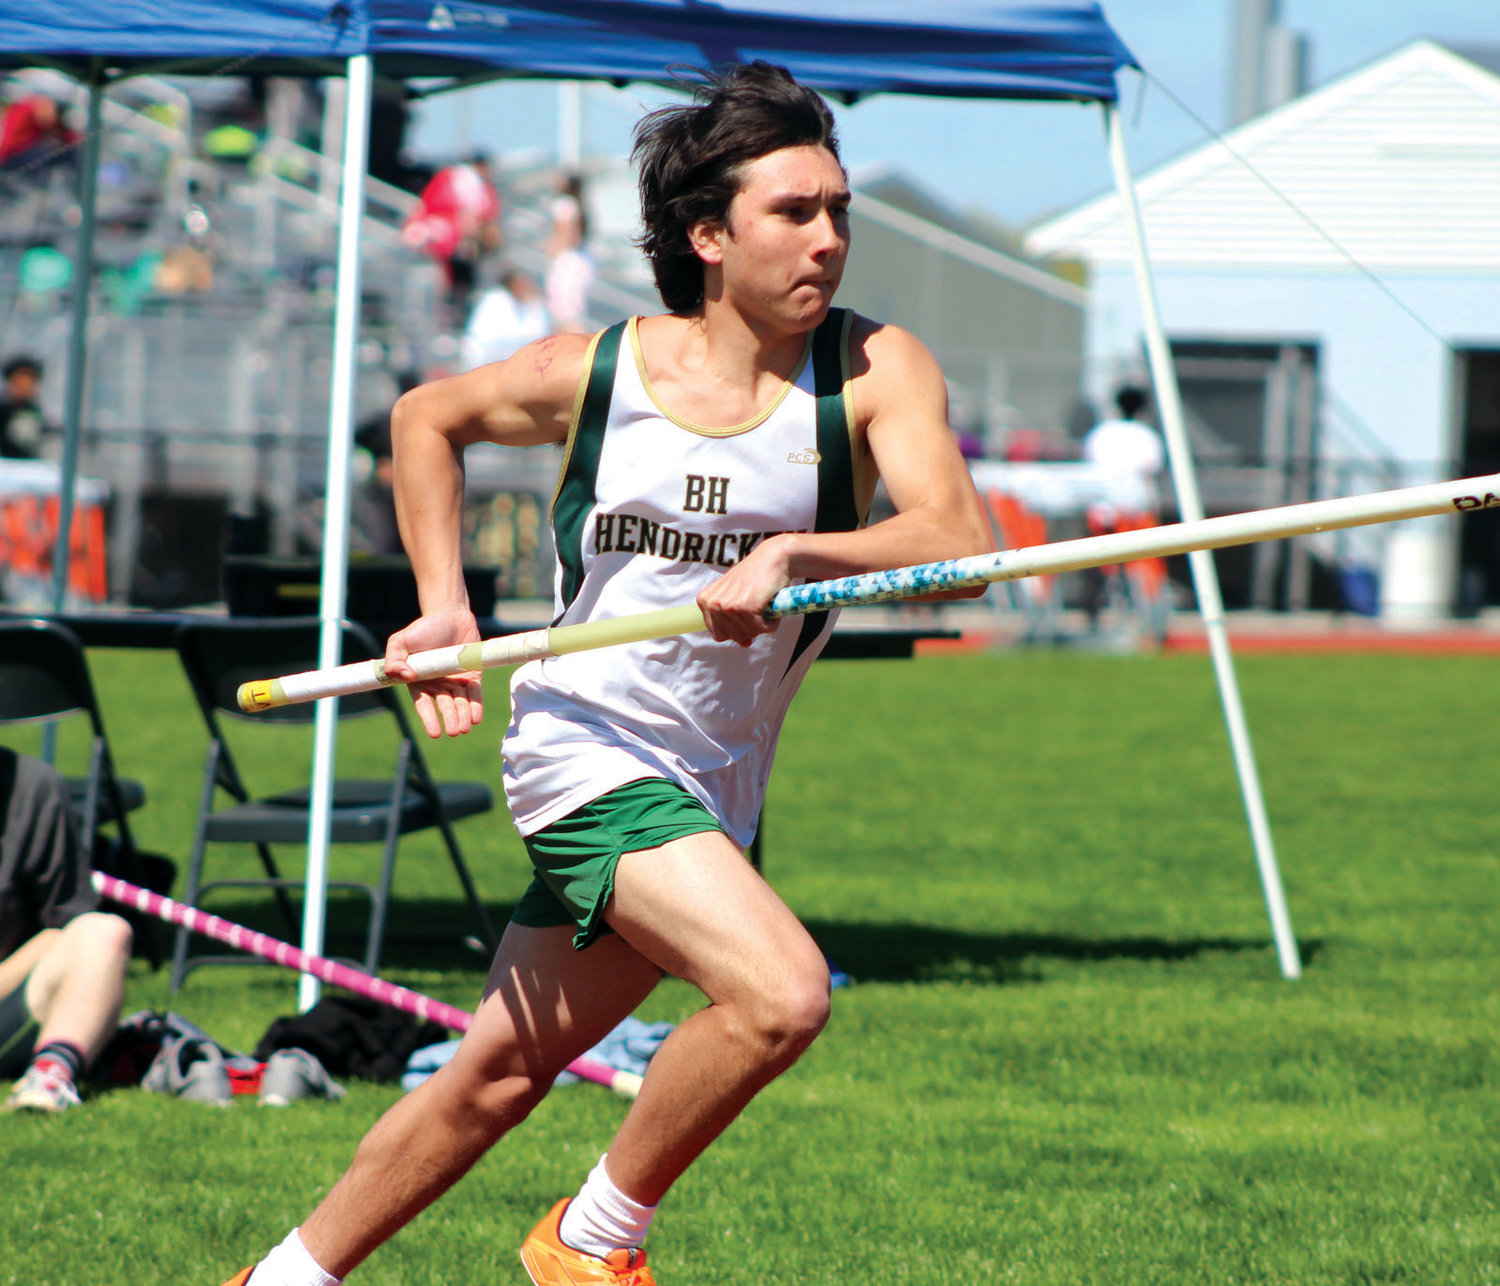 MAKING THE JUMP: Hendricken's Matt Froehlich competes in pole vault.